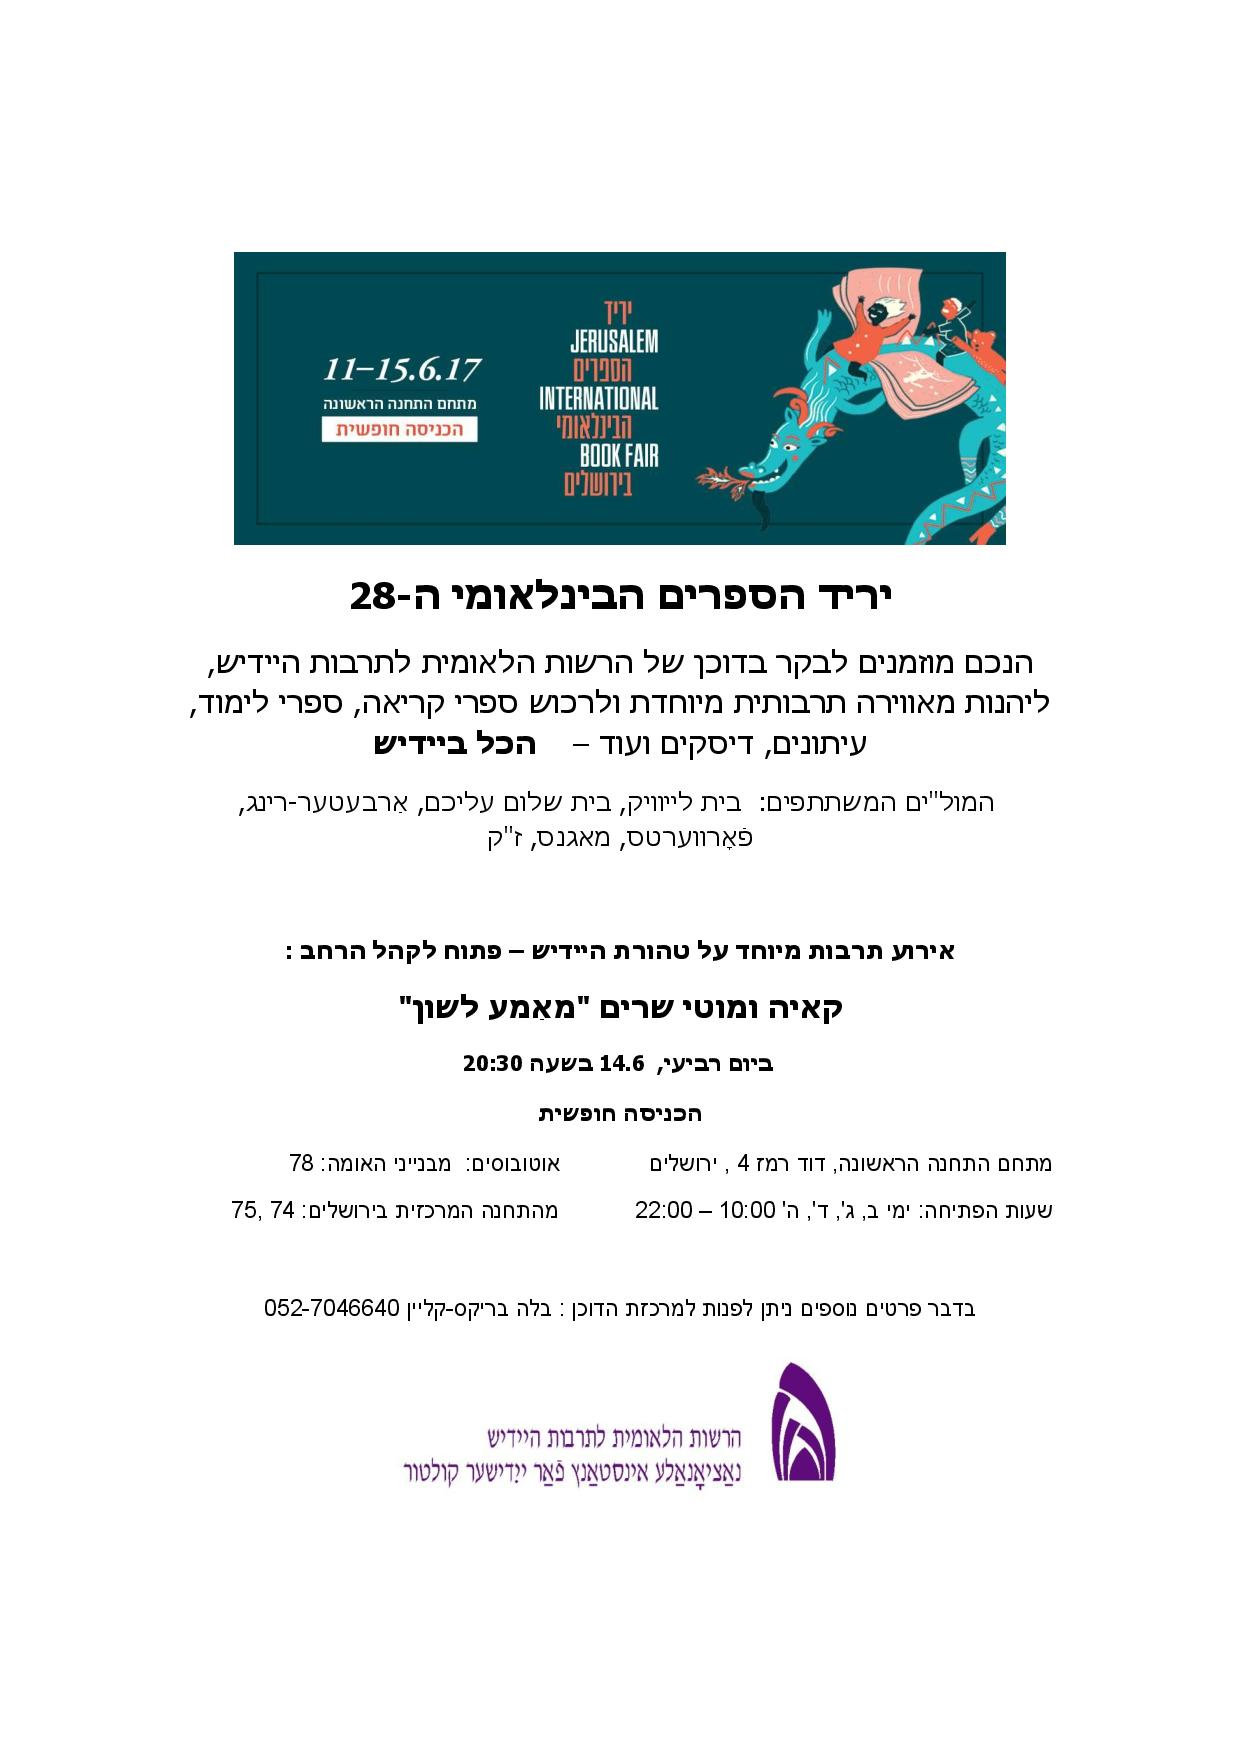 Int l Book Fair 11 15.06.2017 Jerusalem page 001